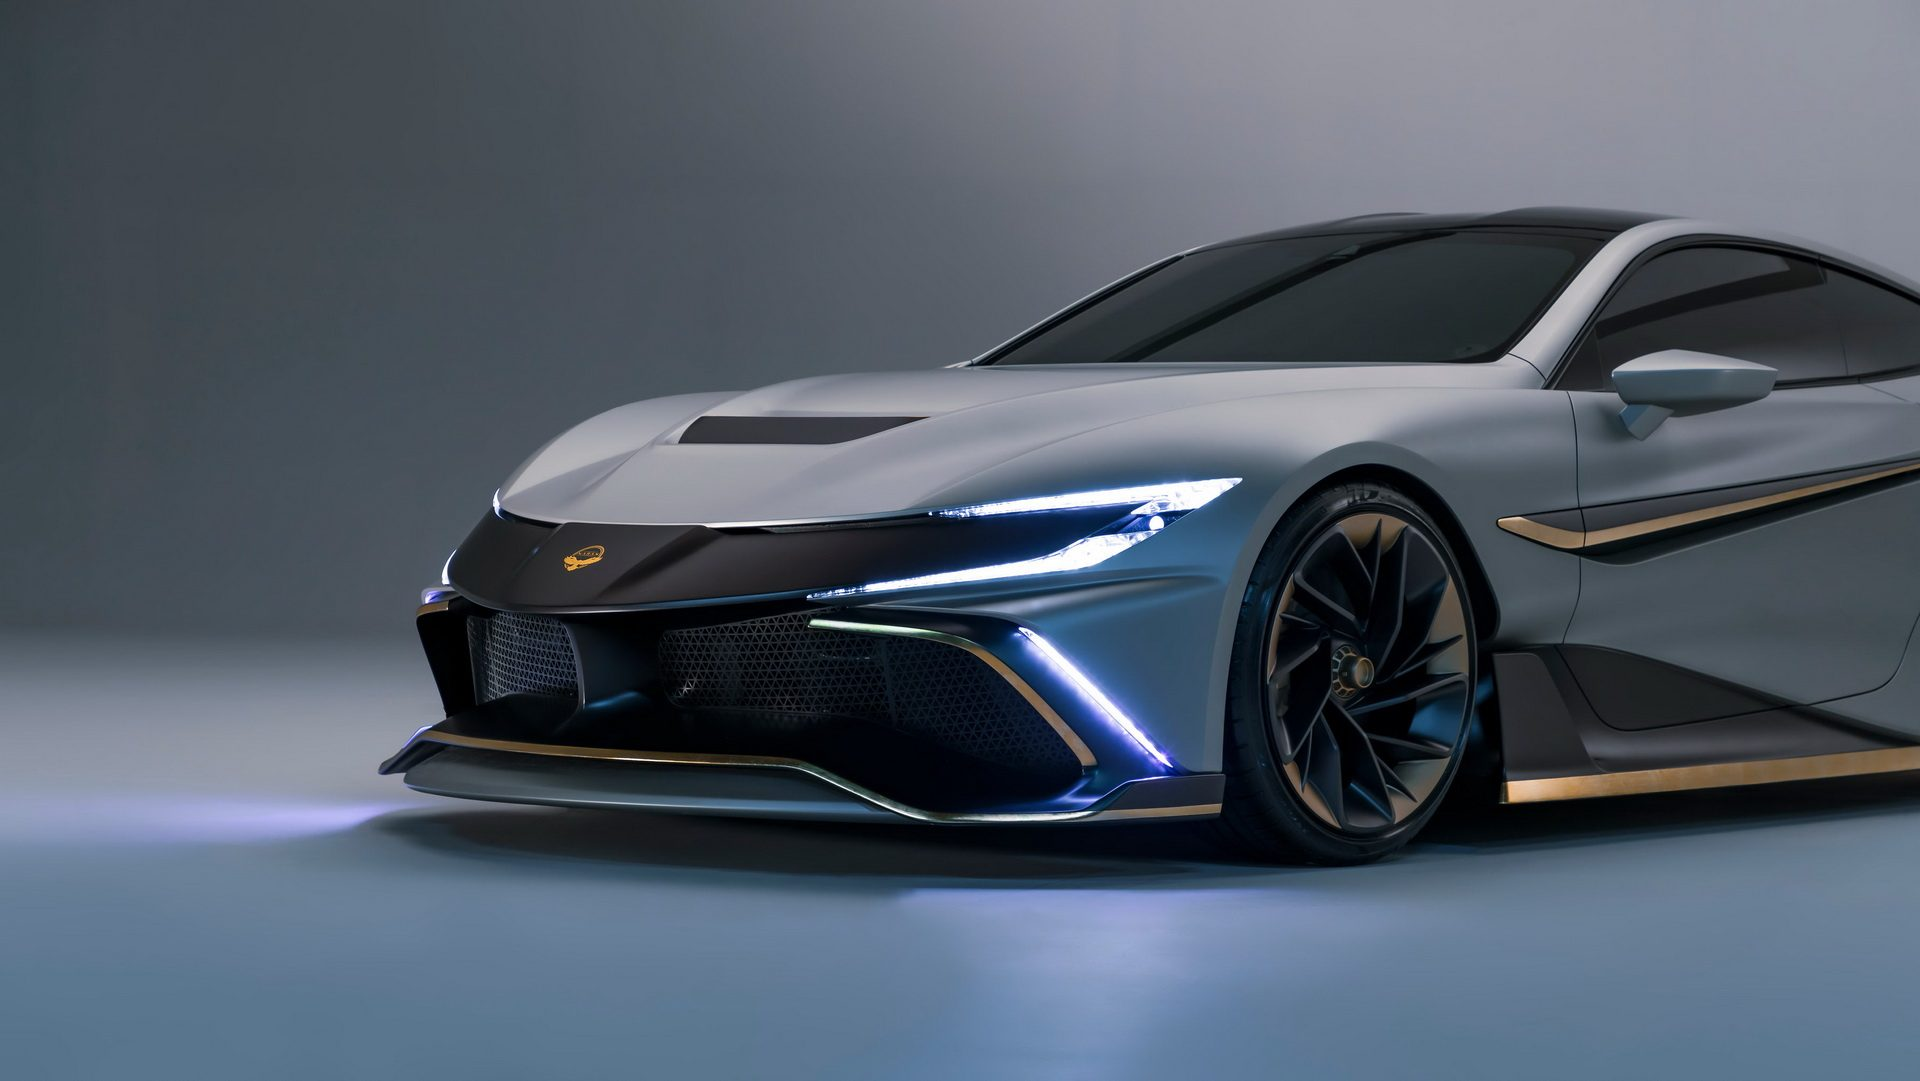 Naran Reveals Its 1,000HP Hypercar Coupe With Mind Bending Performance - Grand Tour Nation